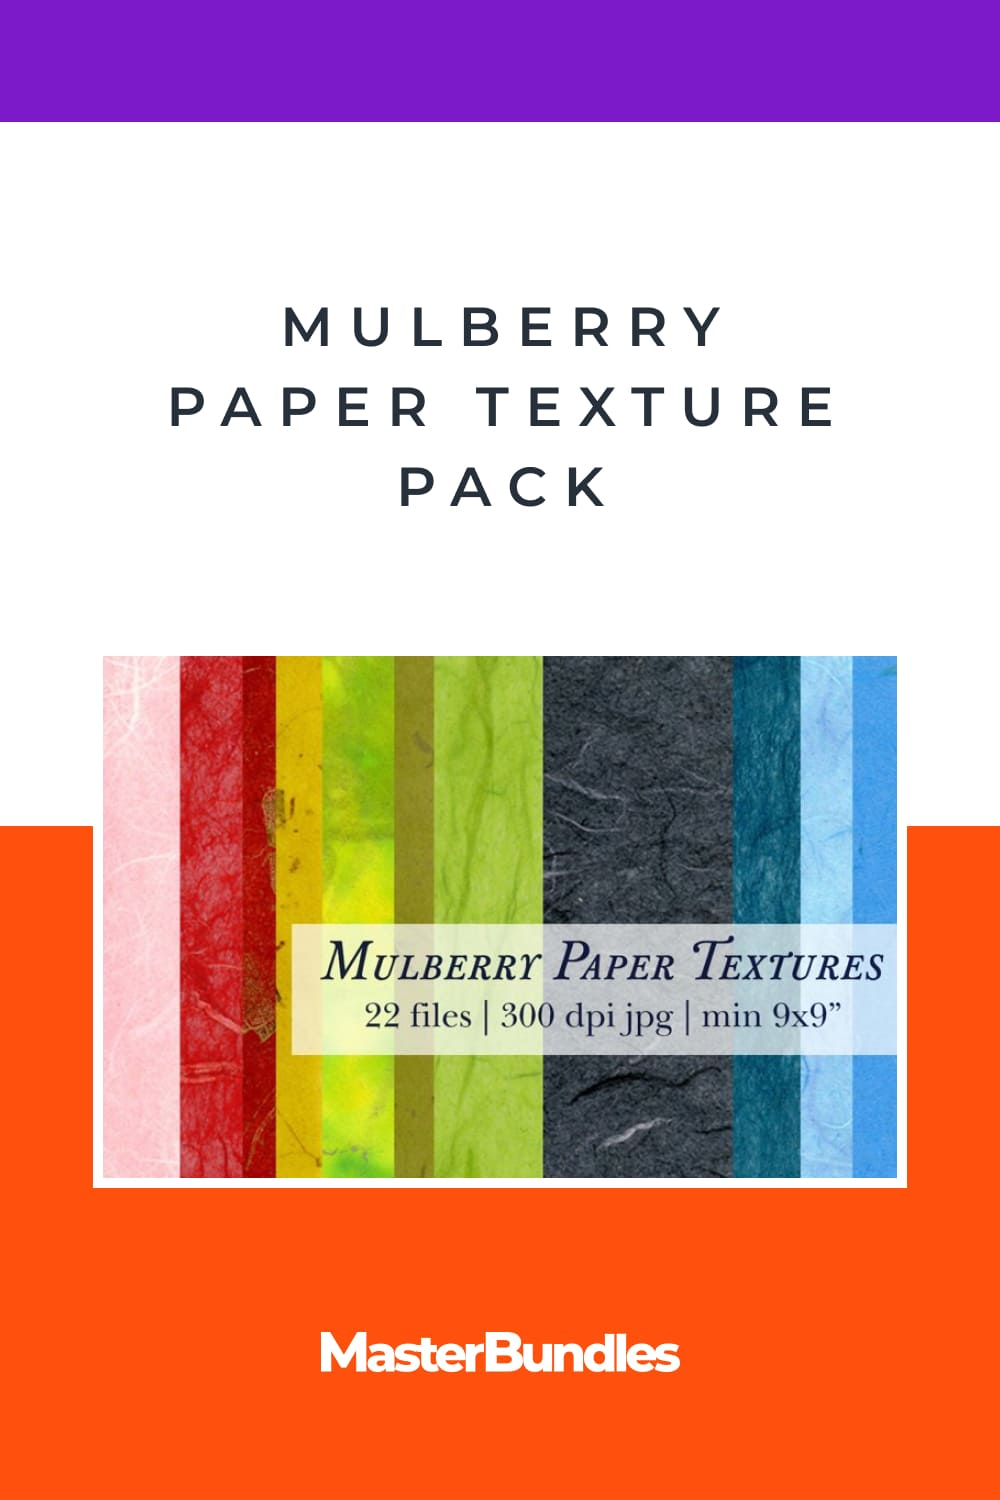 Mulberry Paper Texture Pack.